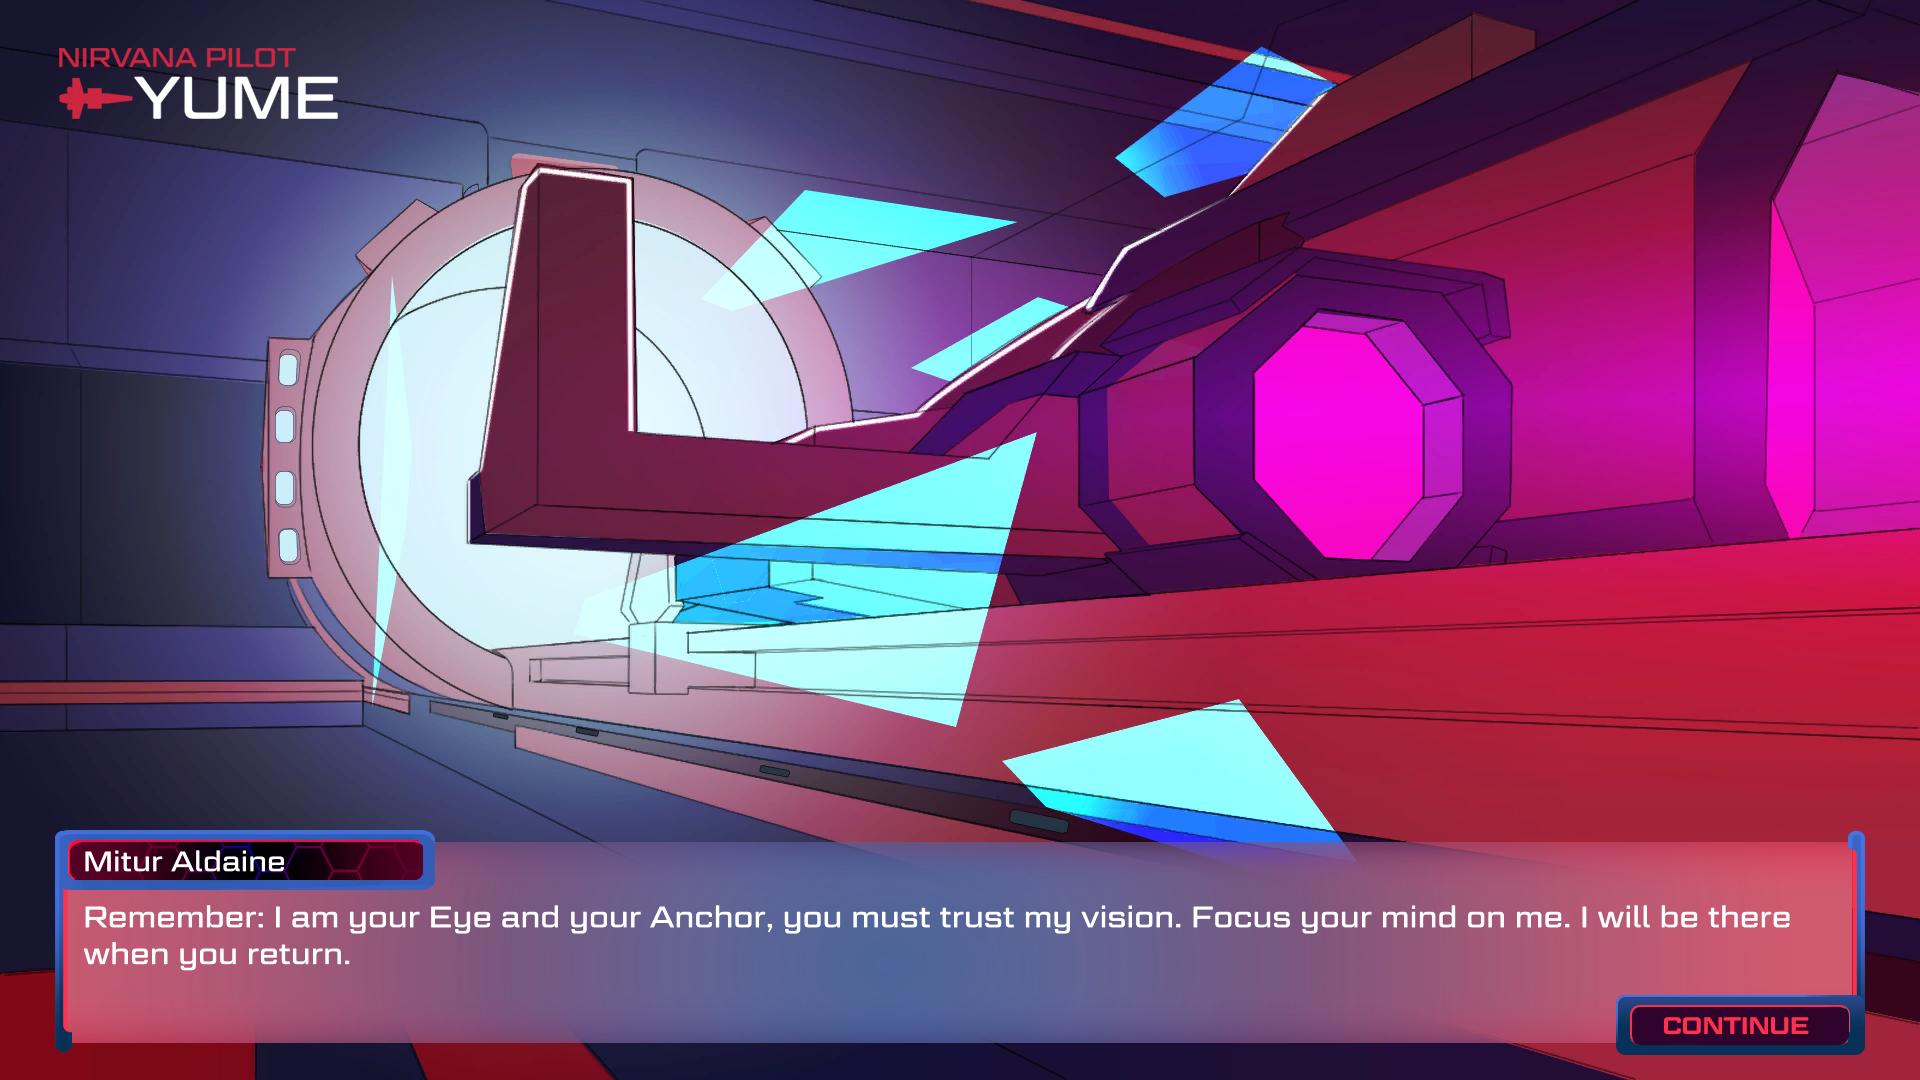 Racing_Nirvana-Pilot-Yume-Arcade Visual Novel.png